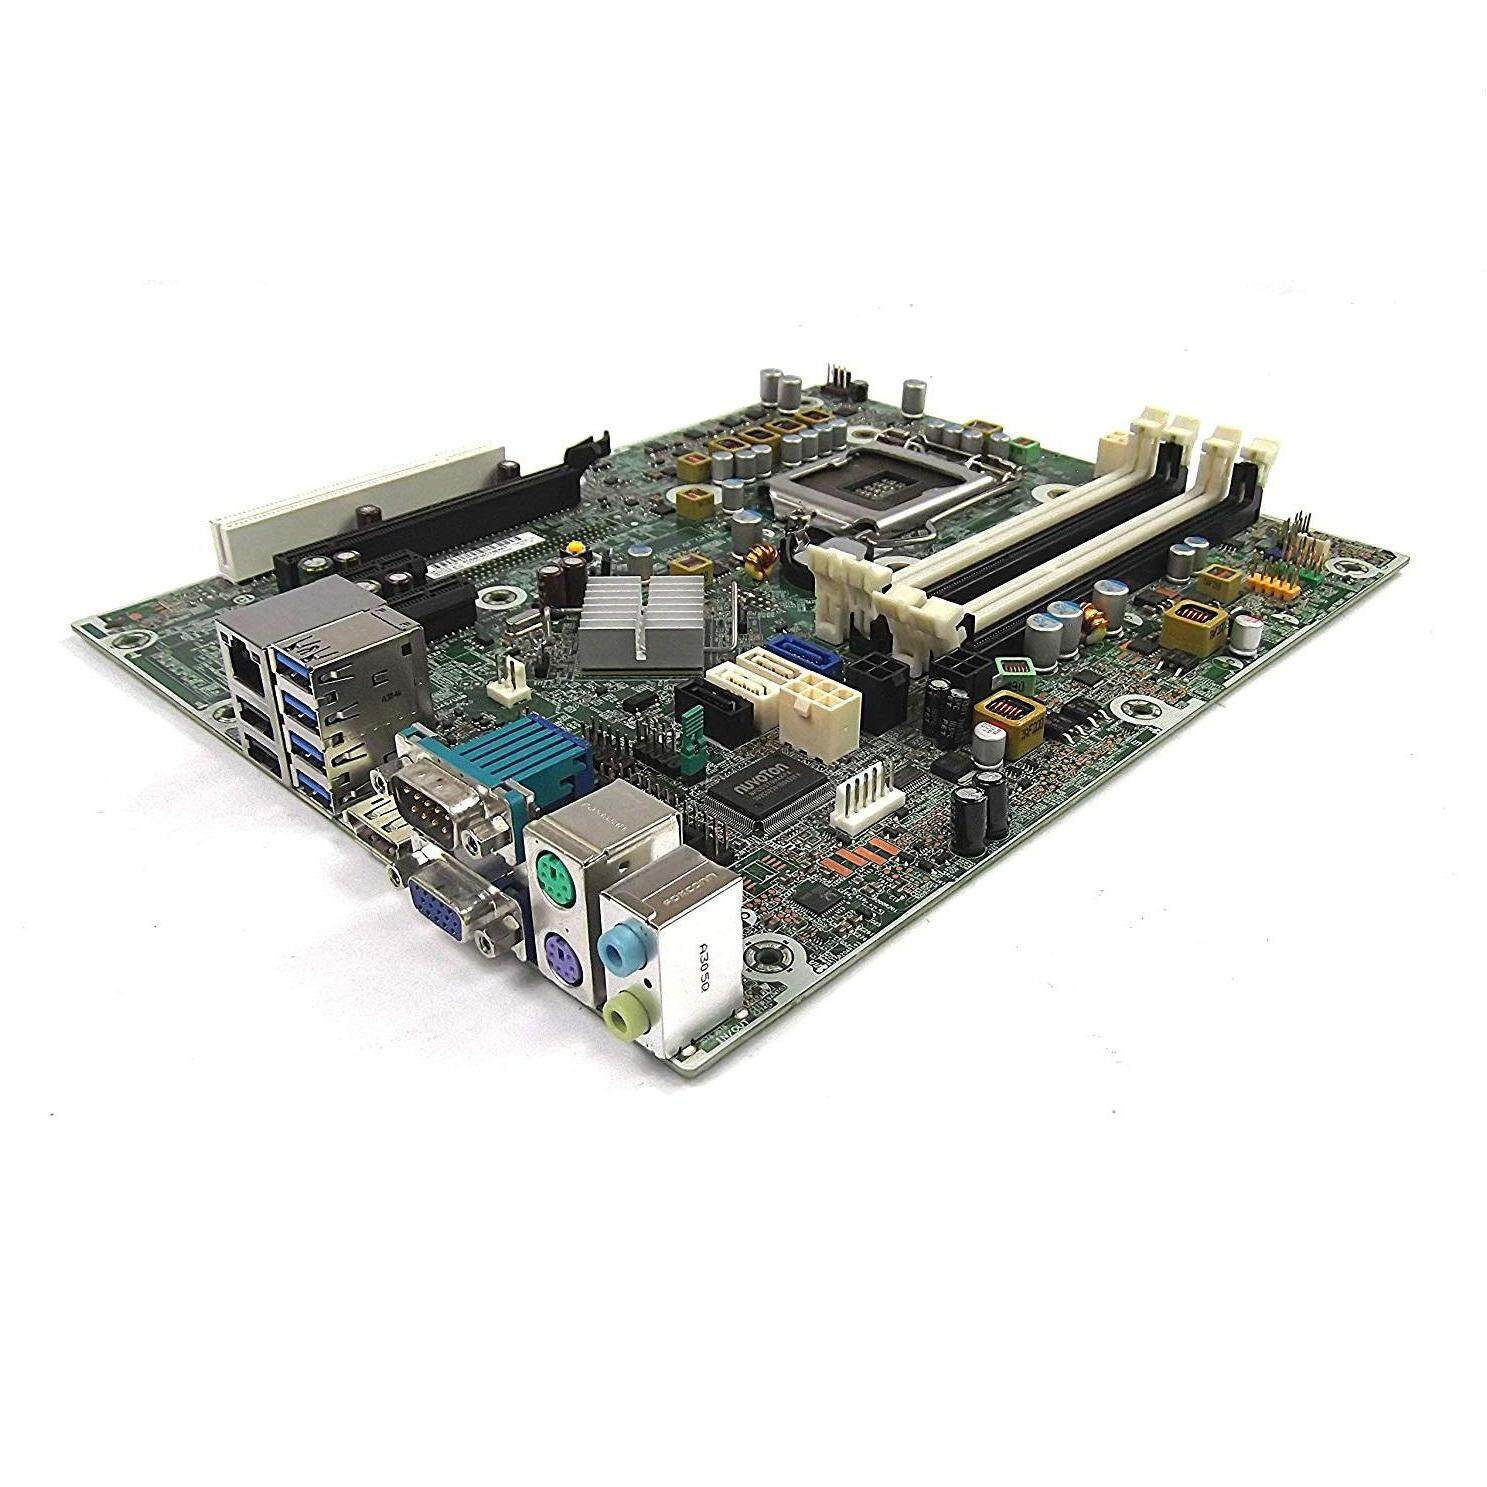 HP Pro 6300 Microtower Desktop Motherboard 656961-001 Socket 1155